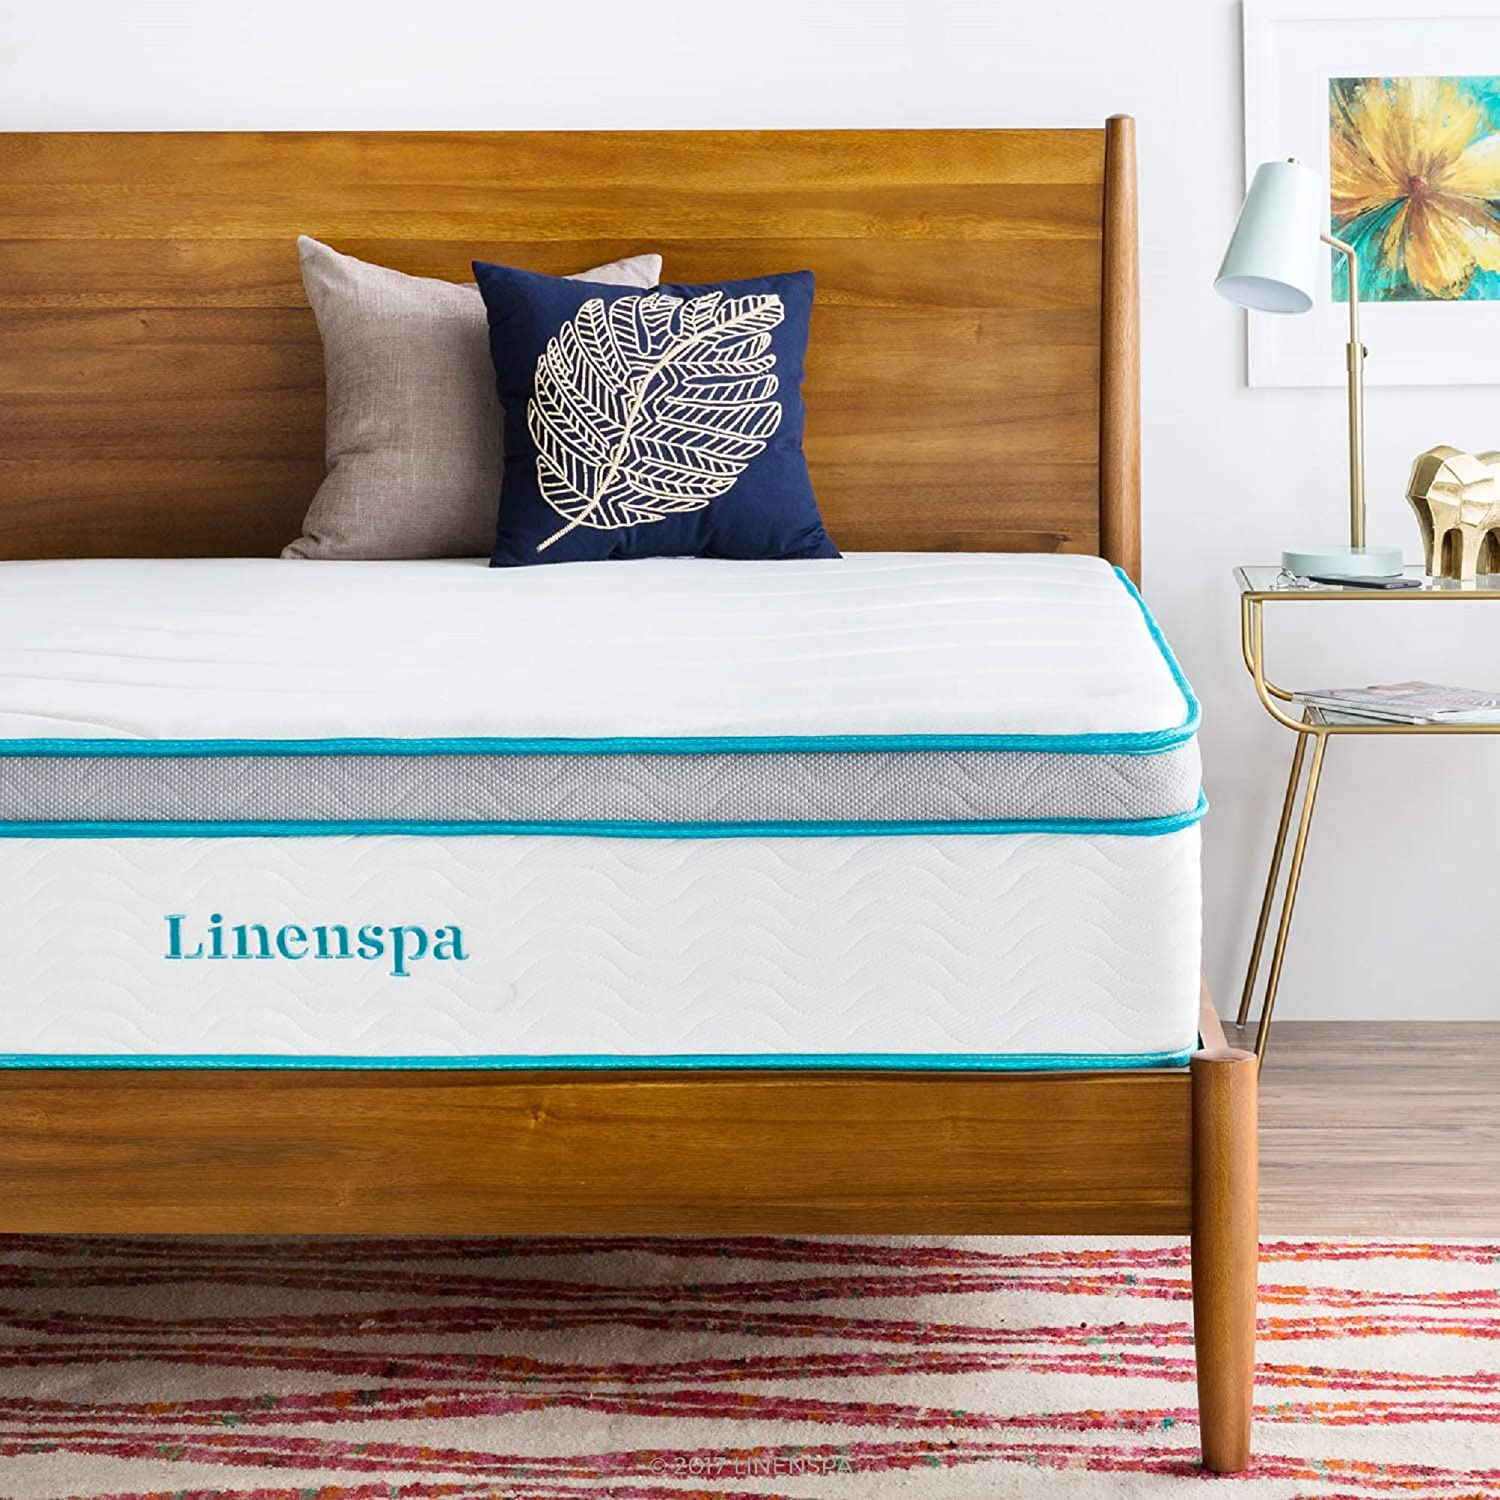 LINENSPA 12 Inch Gel Memory Foam Hybrid Mattress – Ultra Plush – Individually Encased Coils – Sleeps Cooler Than Regular Memory Foam – Edge Support – Quilted Foam Cover – King